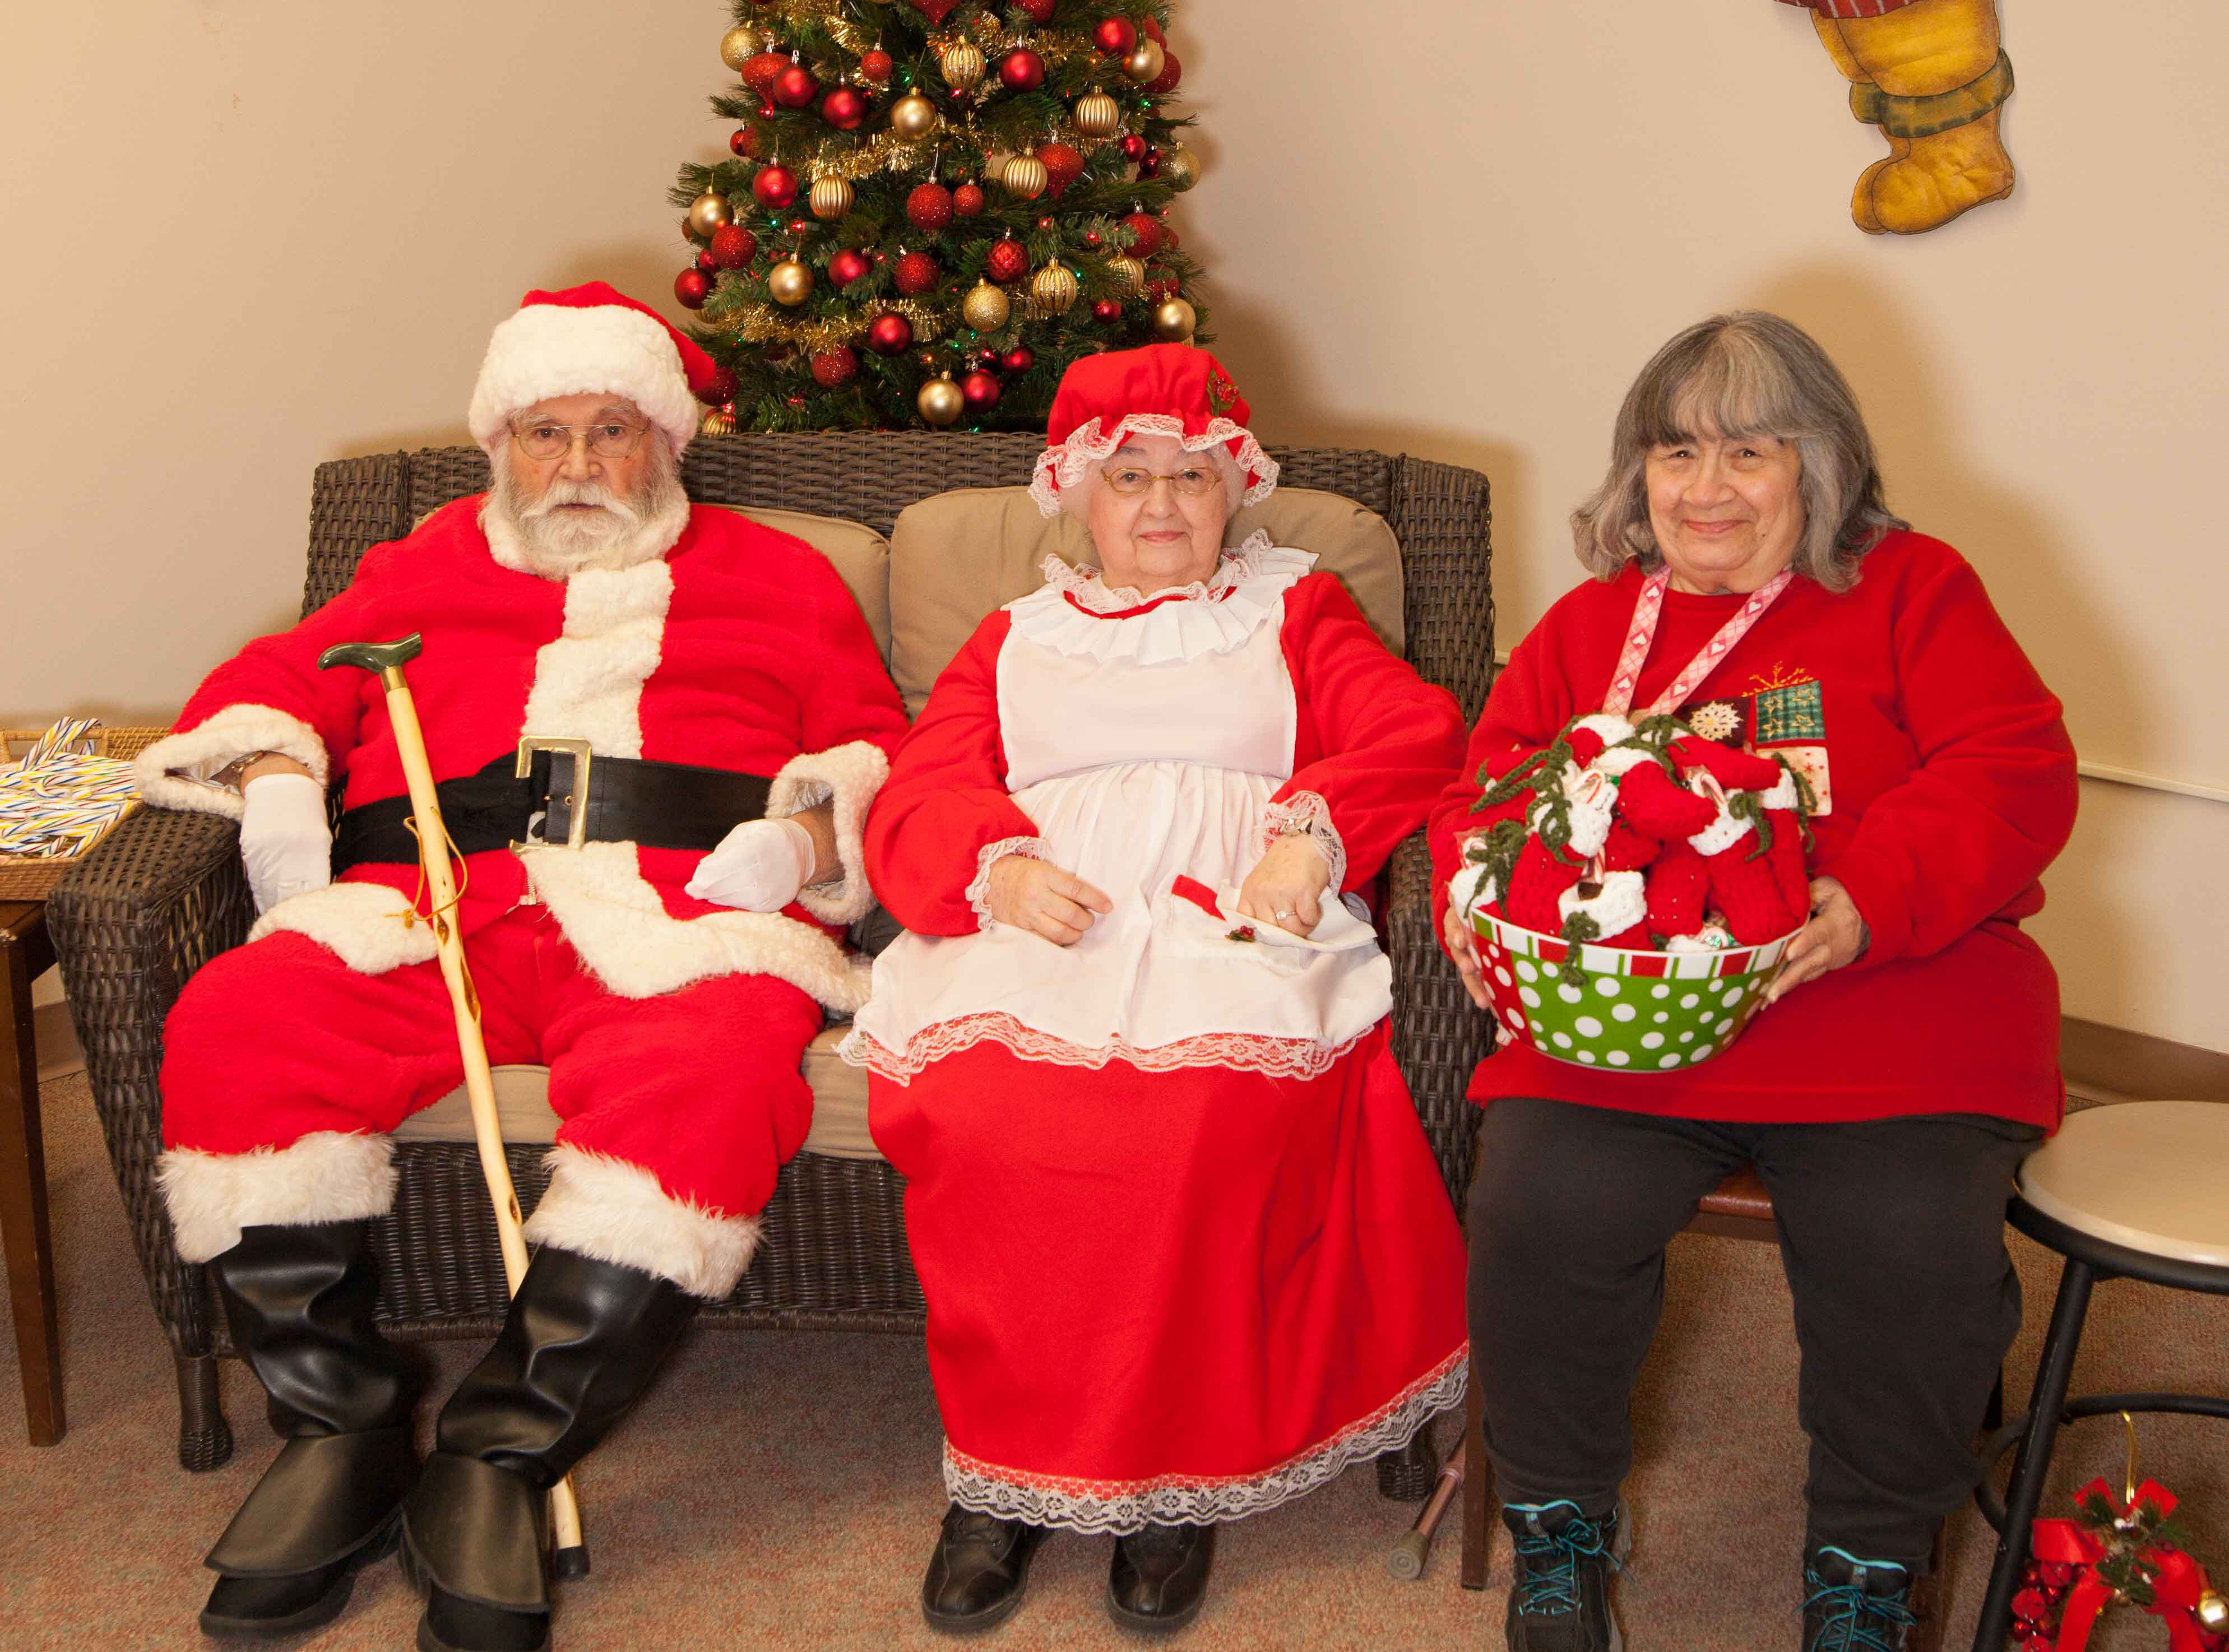 Santa, Mrs. Claus and Ramona